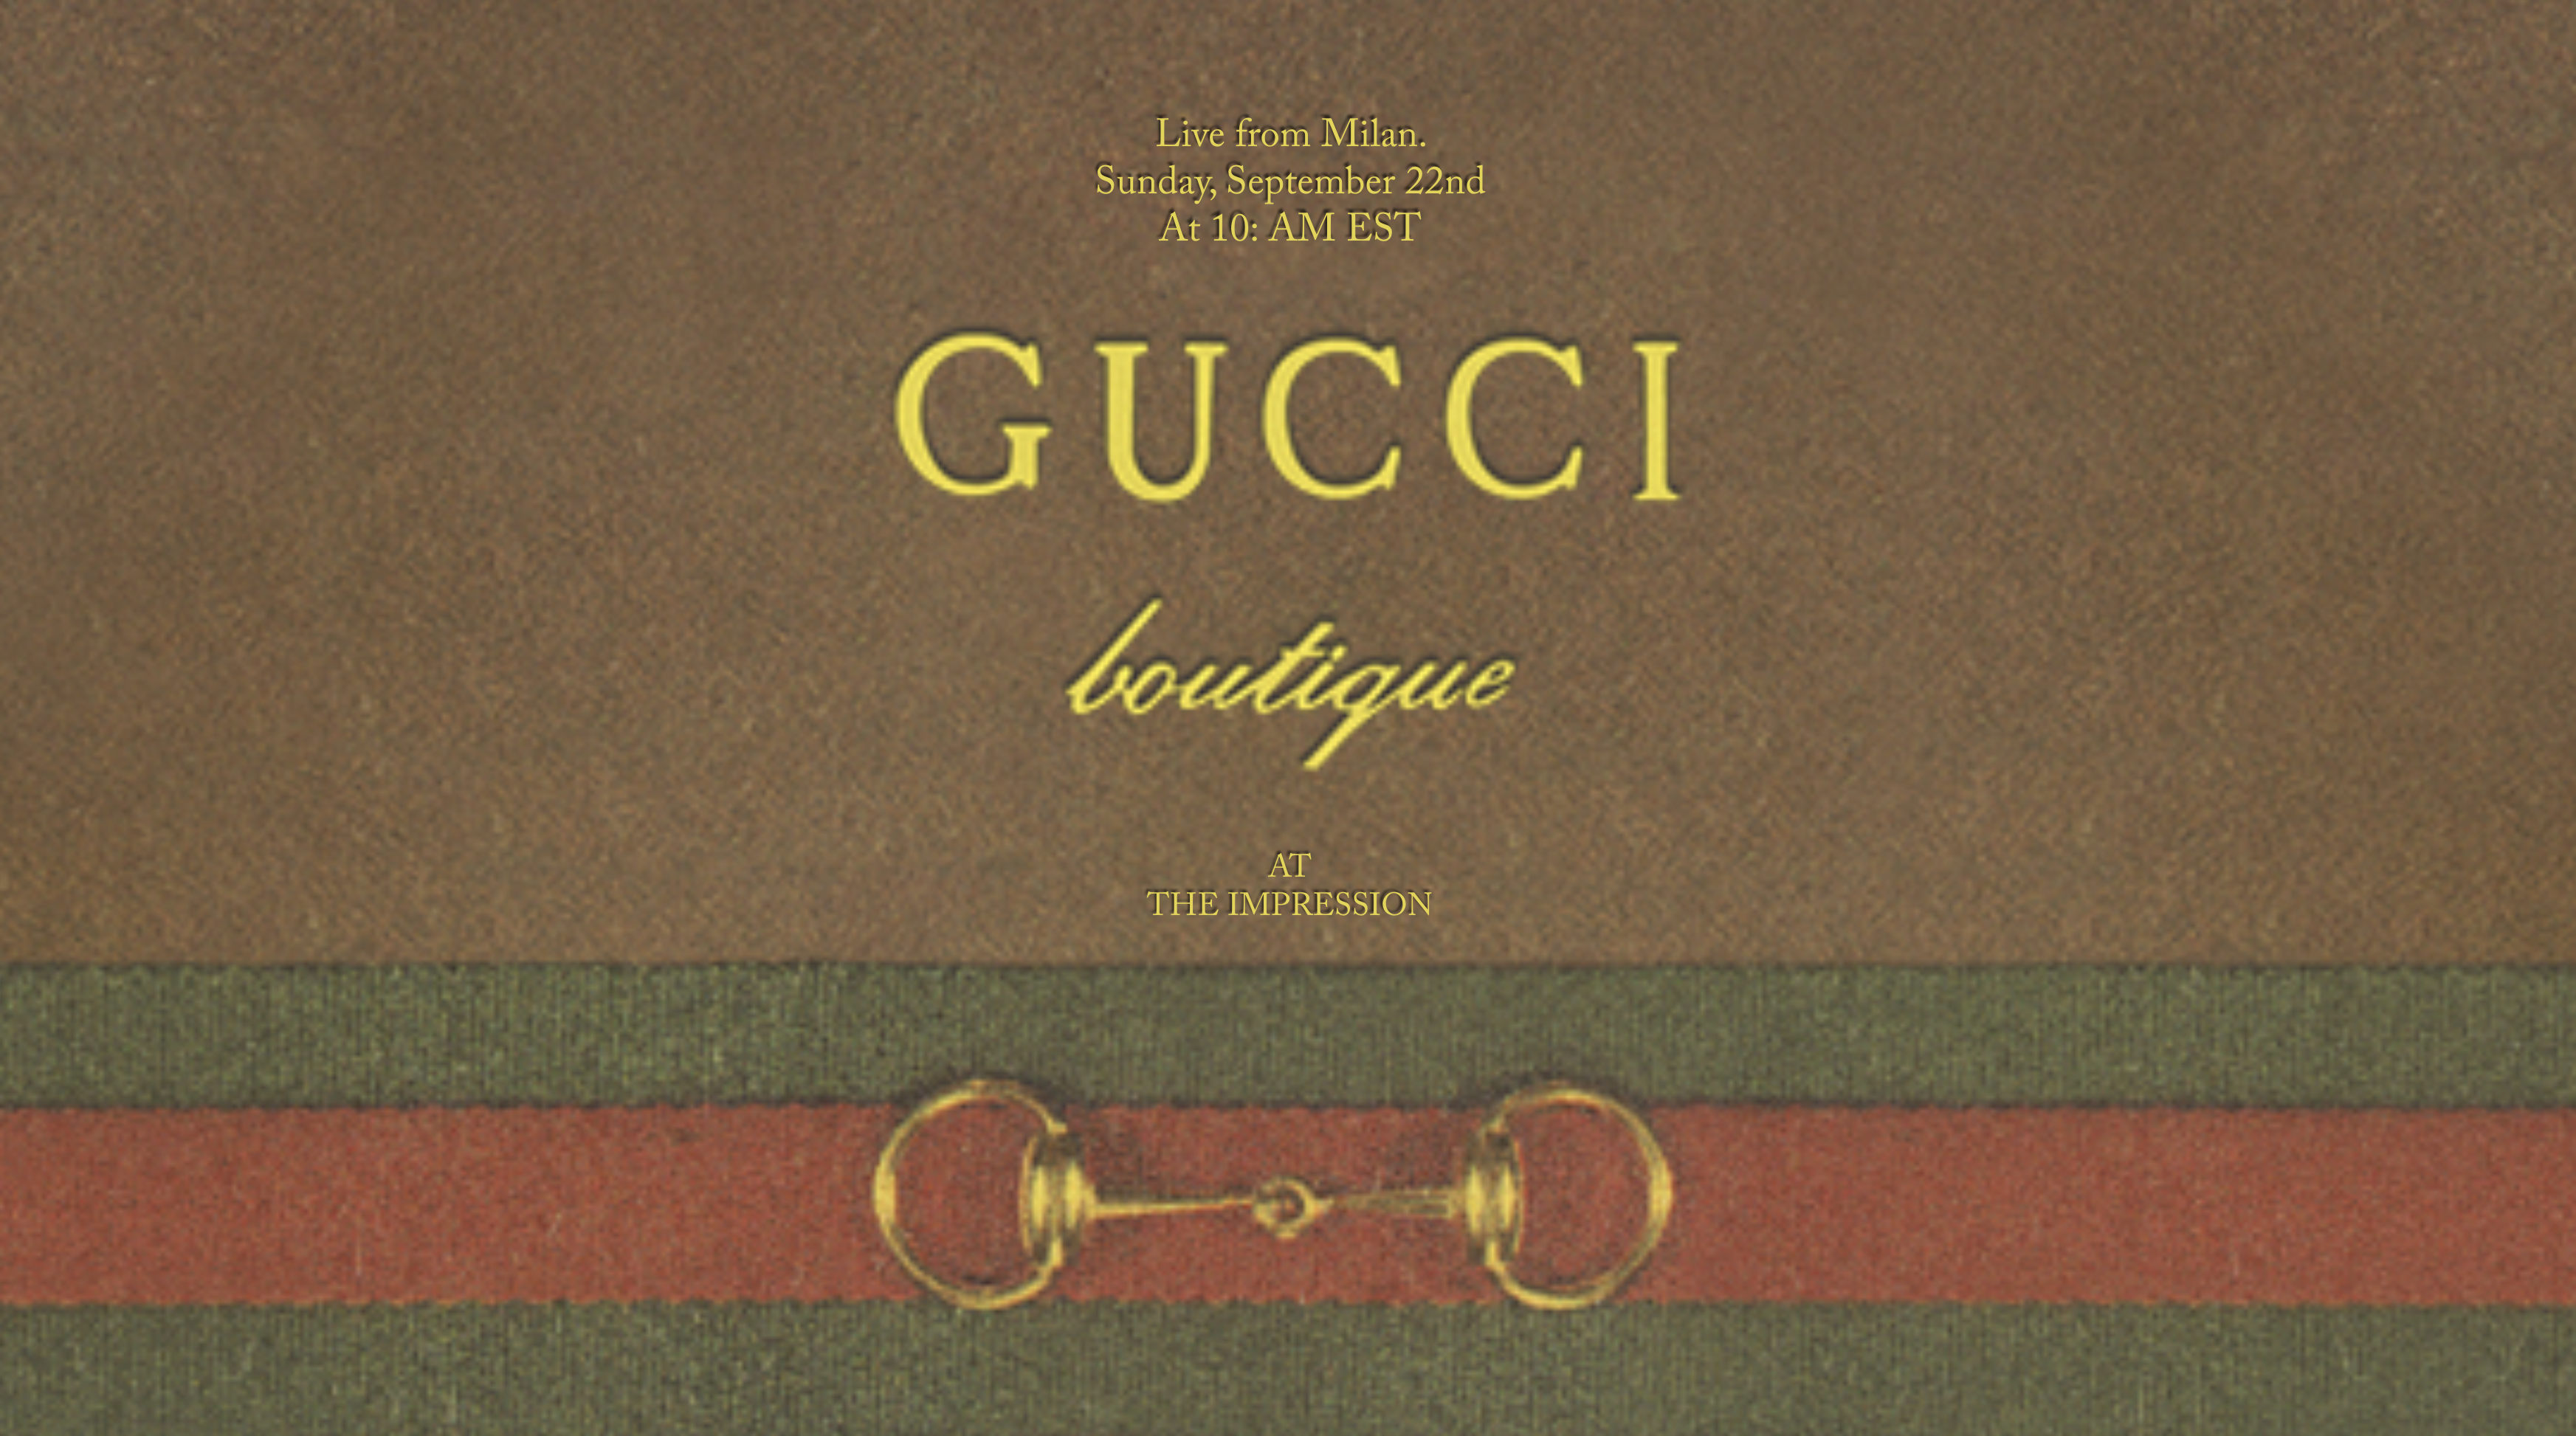 Watch Gucci Spring 2020 Runway Show Live from Milan